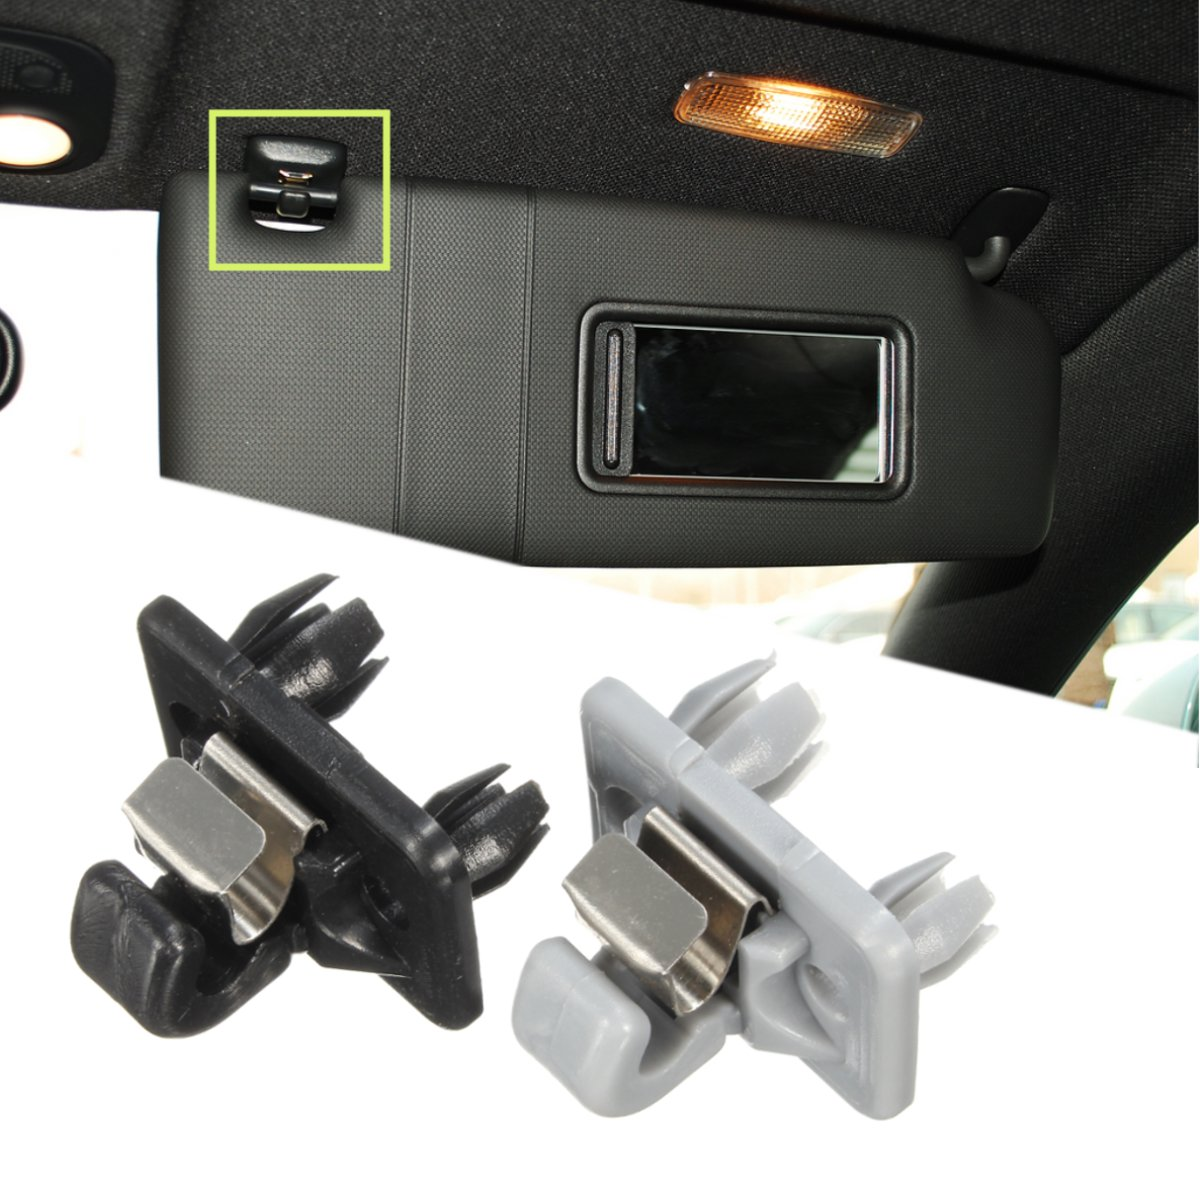 Black /Grey Plastic Auto Sun Visor Clip Holder Hook Stand For Audi A1 A3 A4  A5 Q3 Q5 TT Interior 8U0857562A-in Interior Mouldings from Automobiles ...